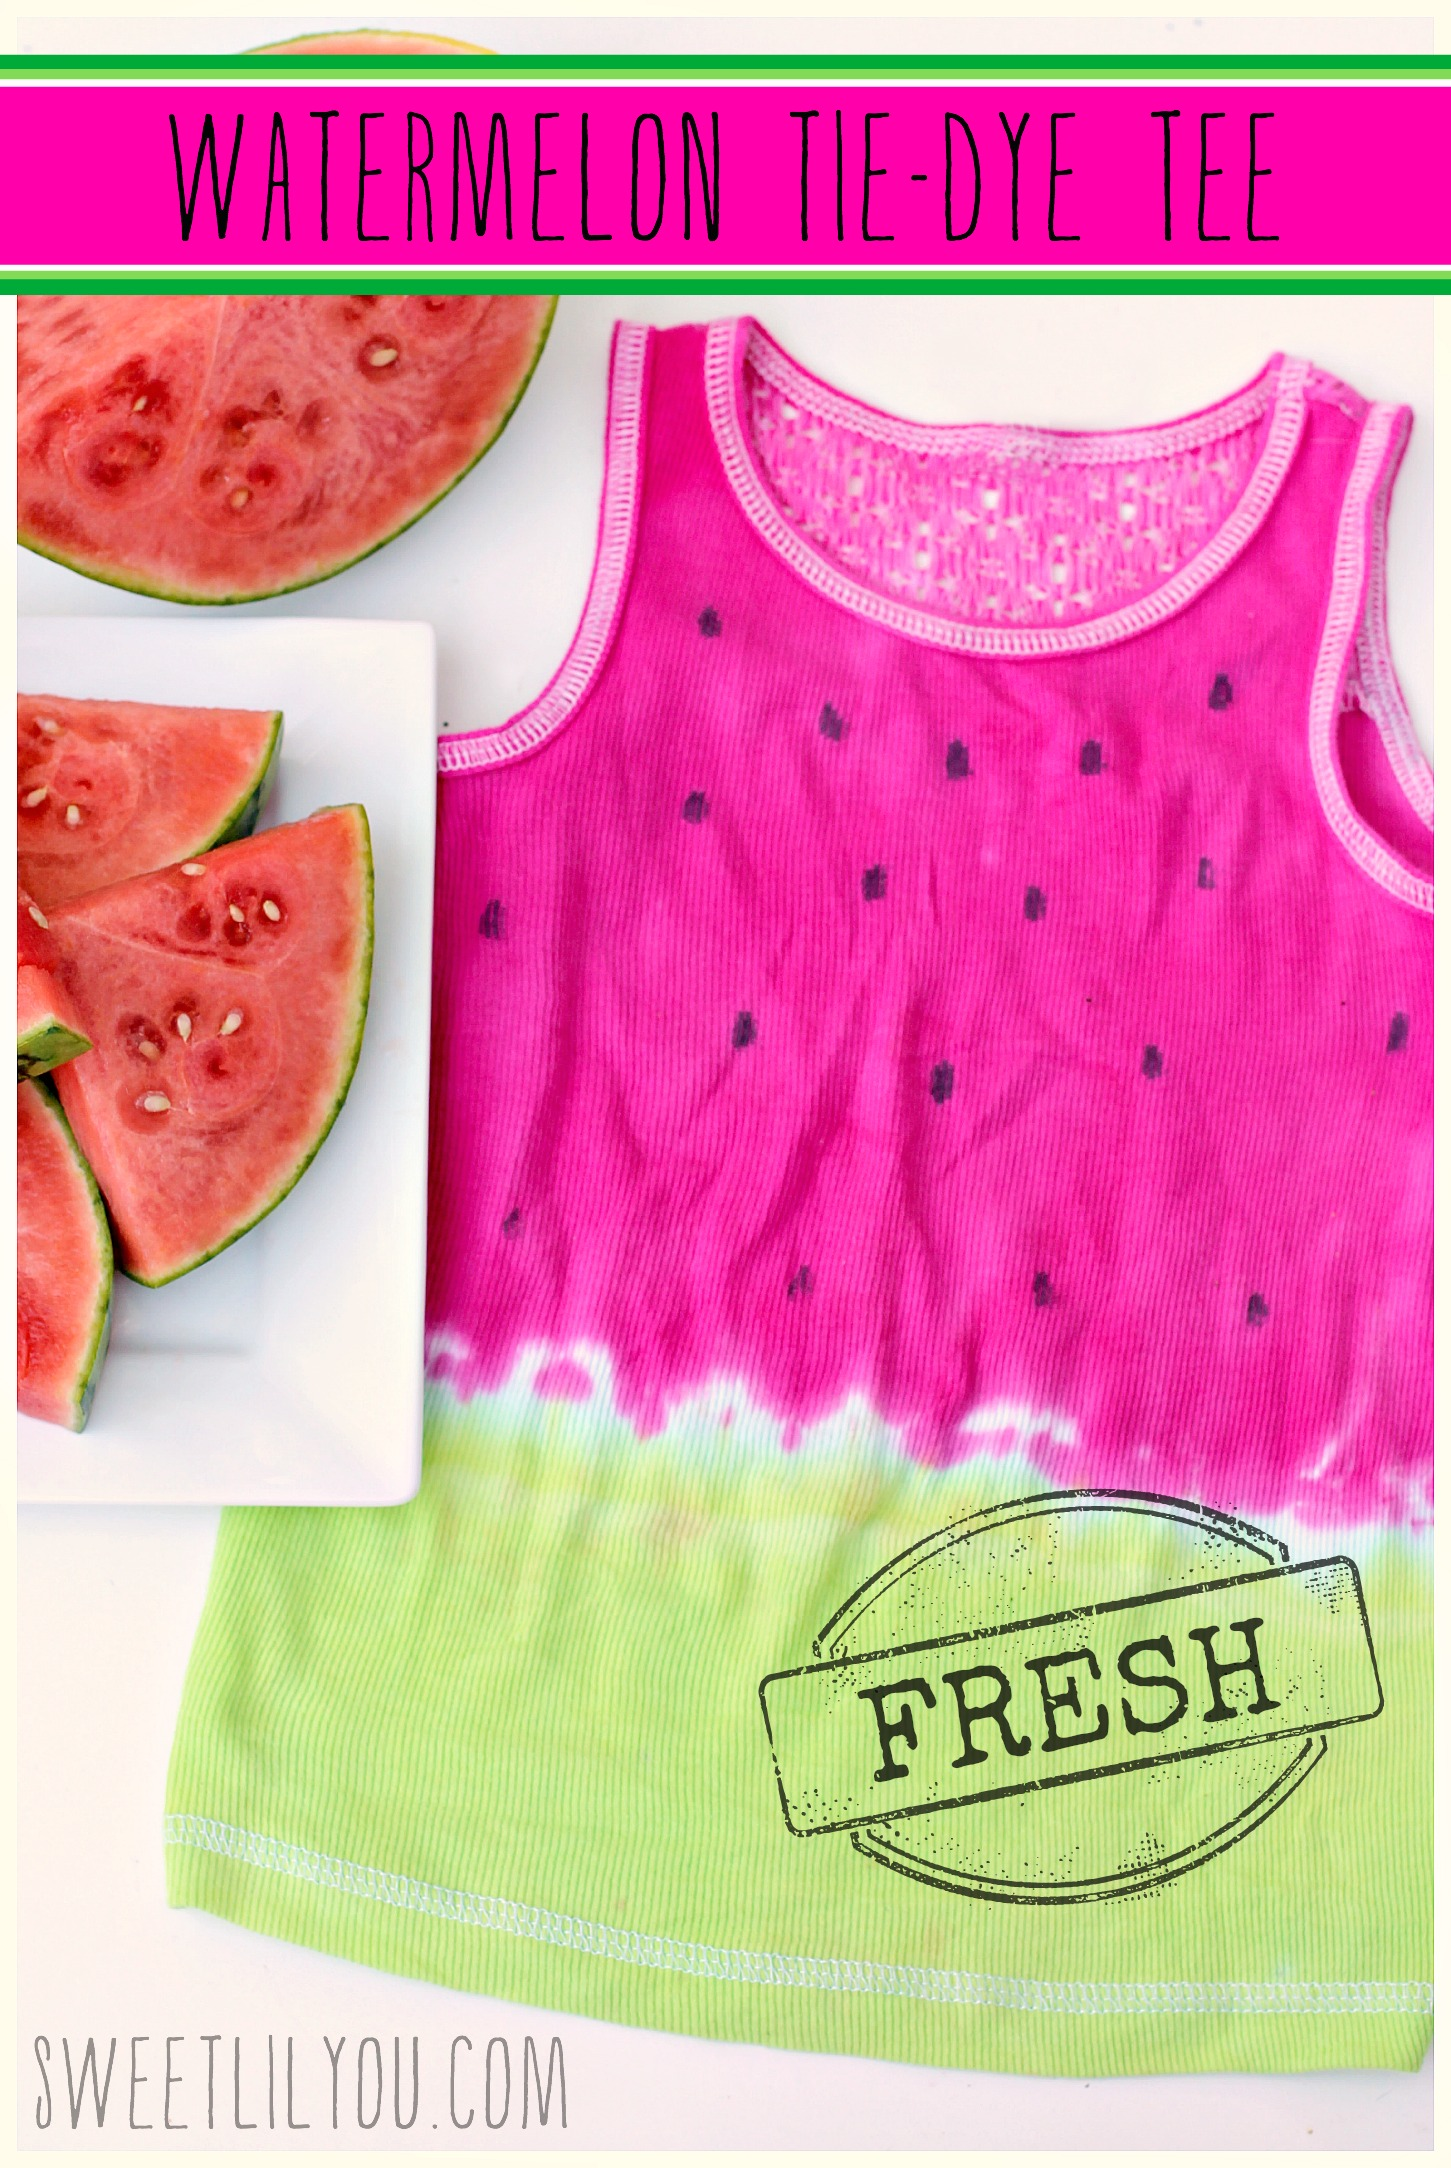 Watermelon Tie Dye Tee Sweet Lil You